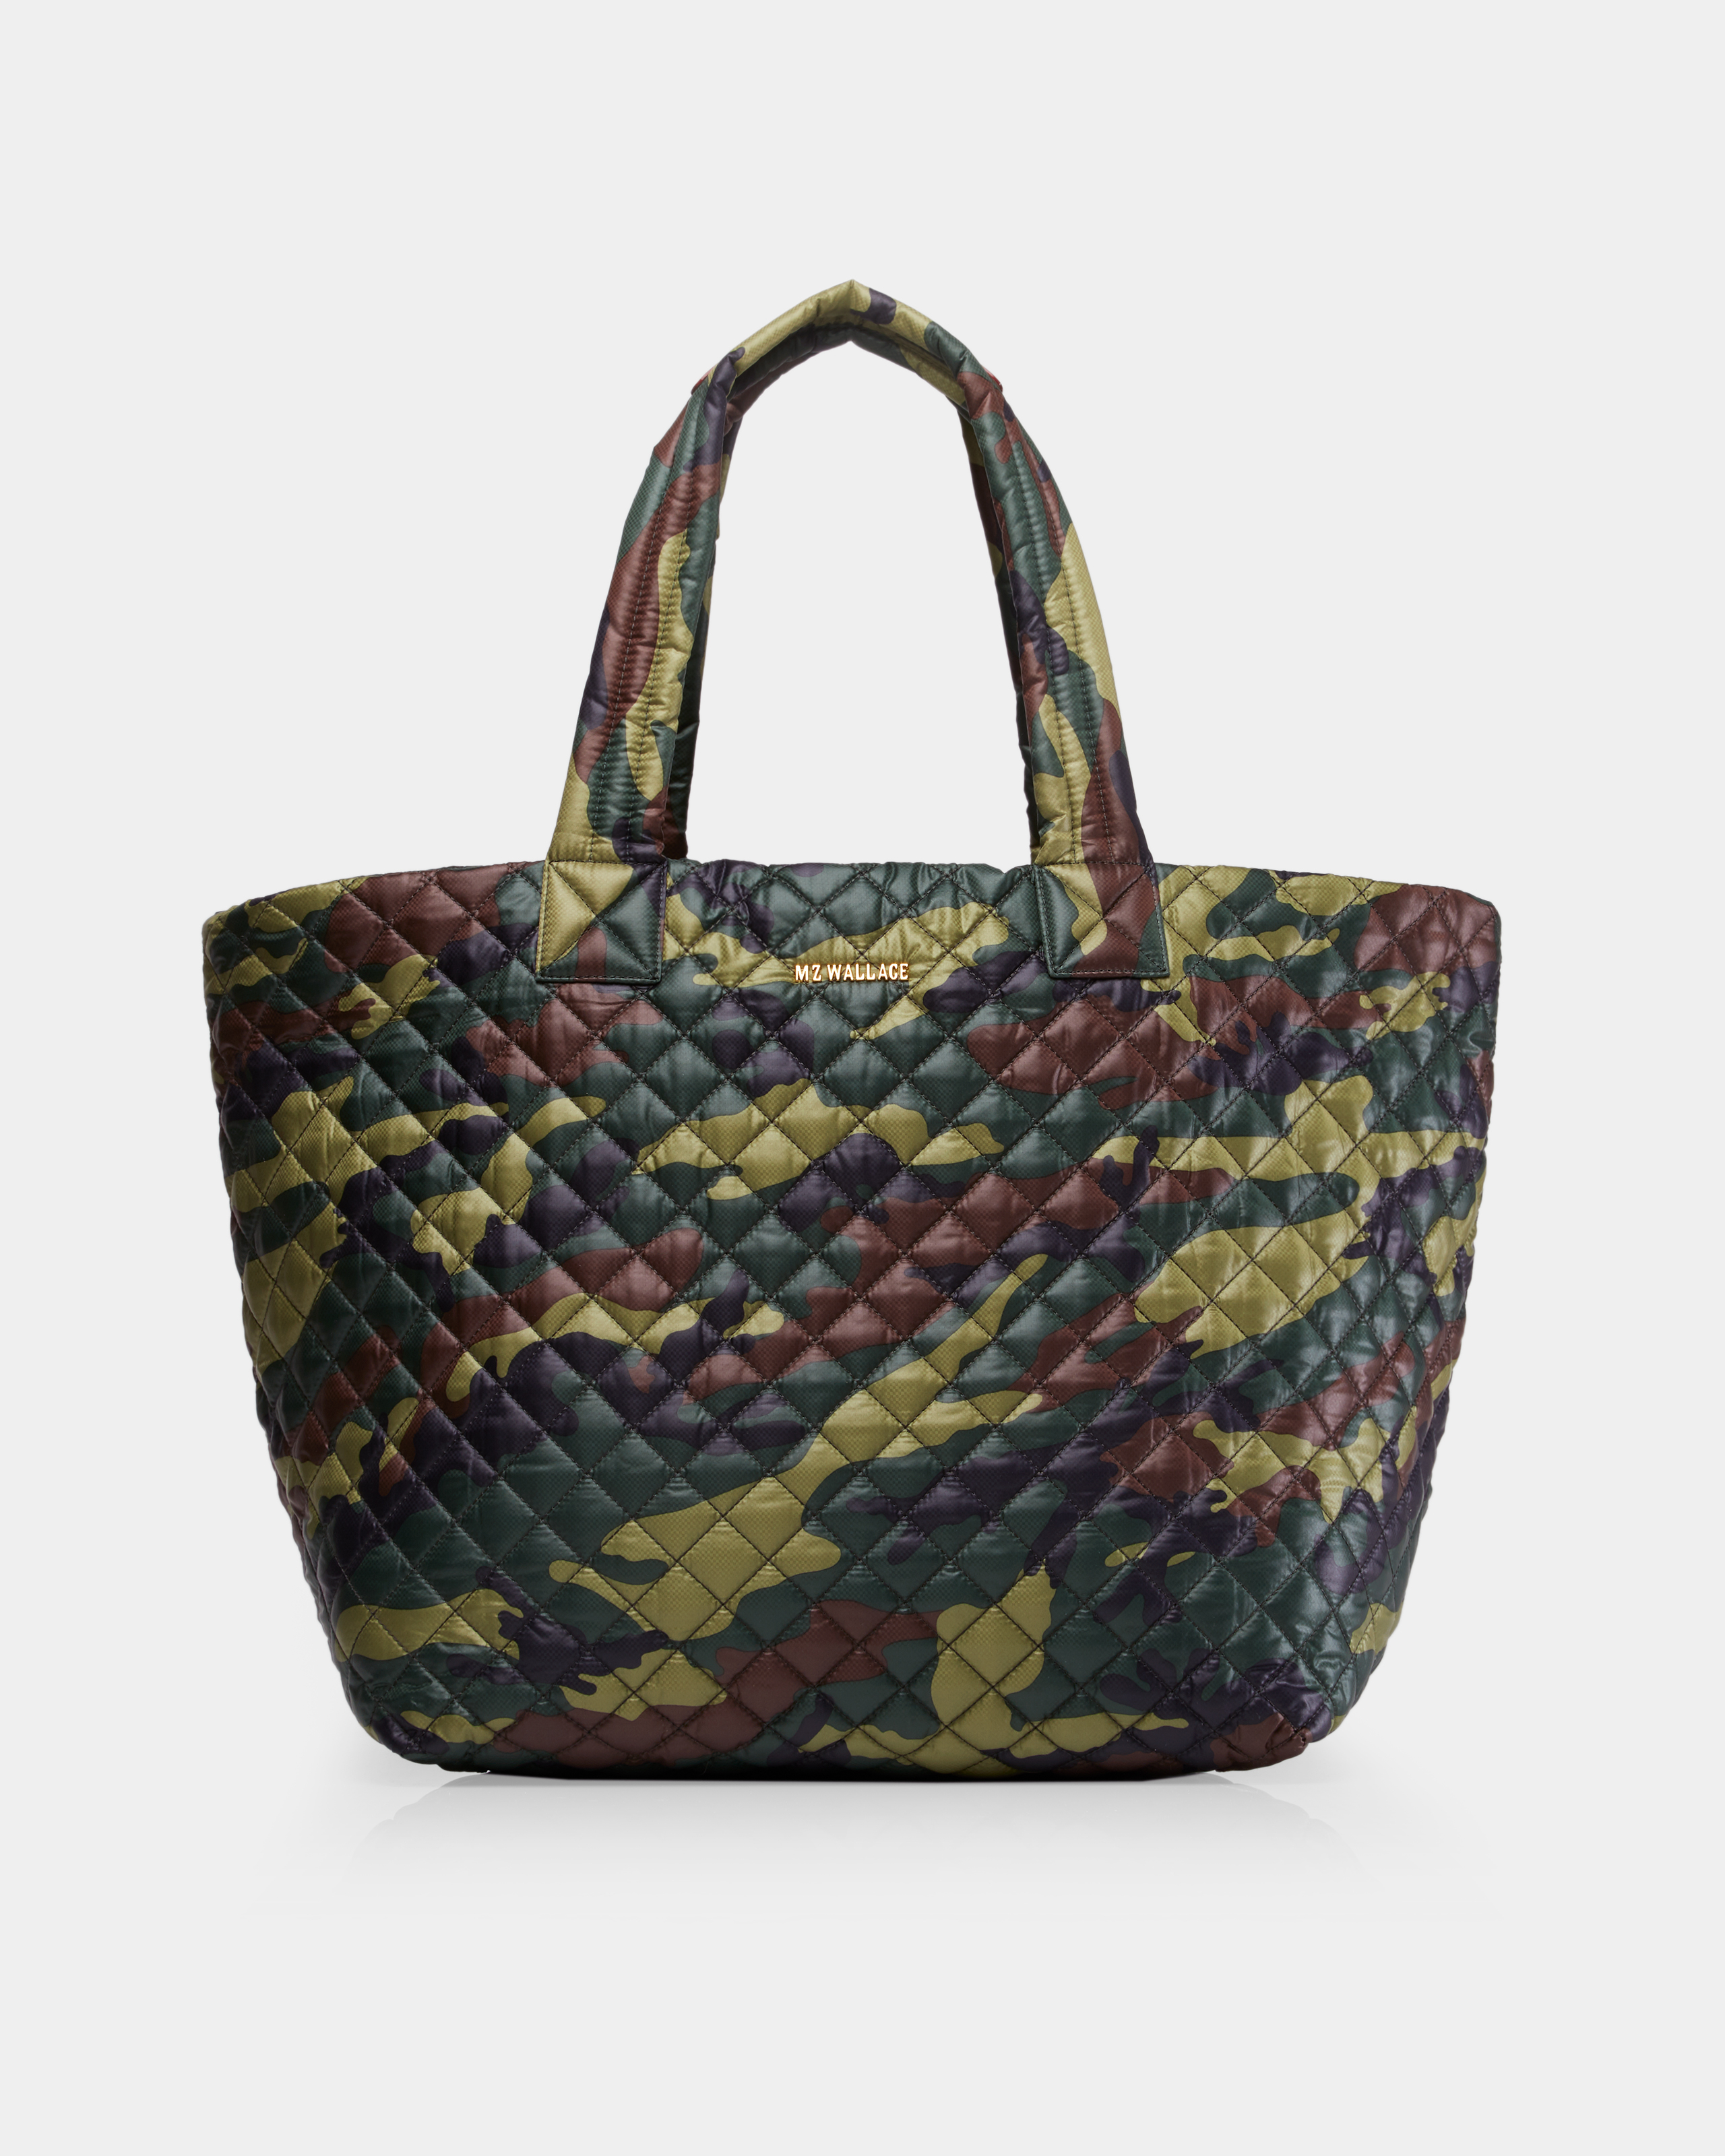 Large Metro Tote - Camo Oxford (3710265) in color Camo